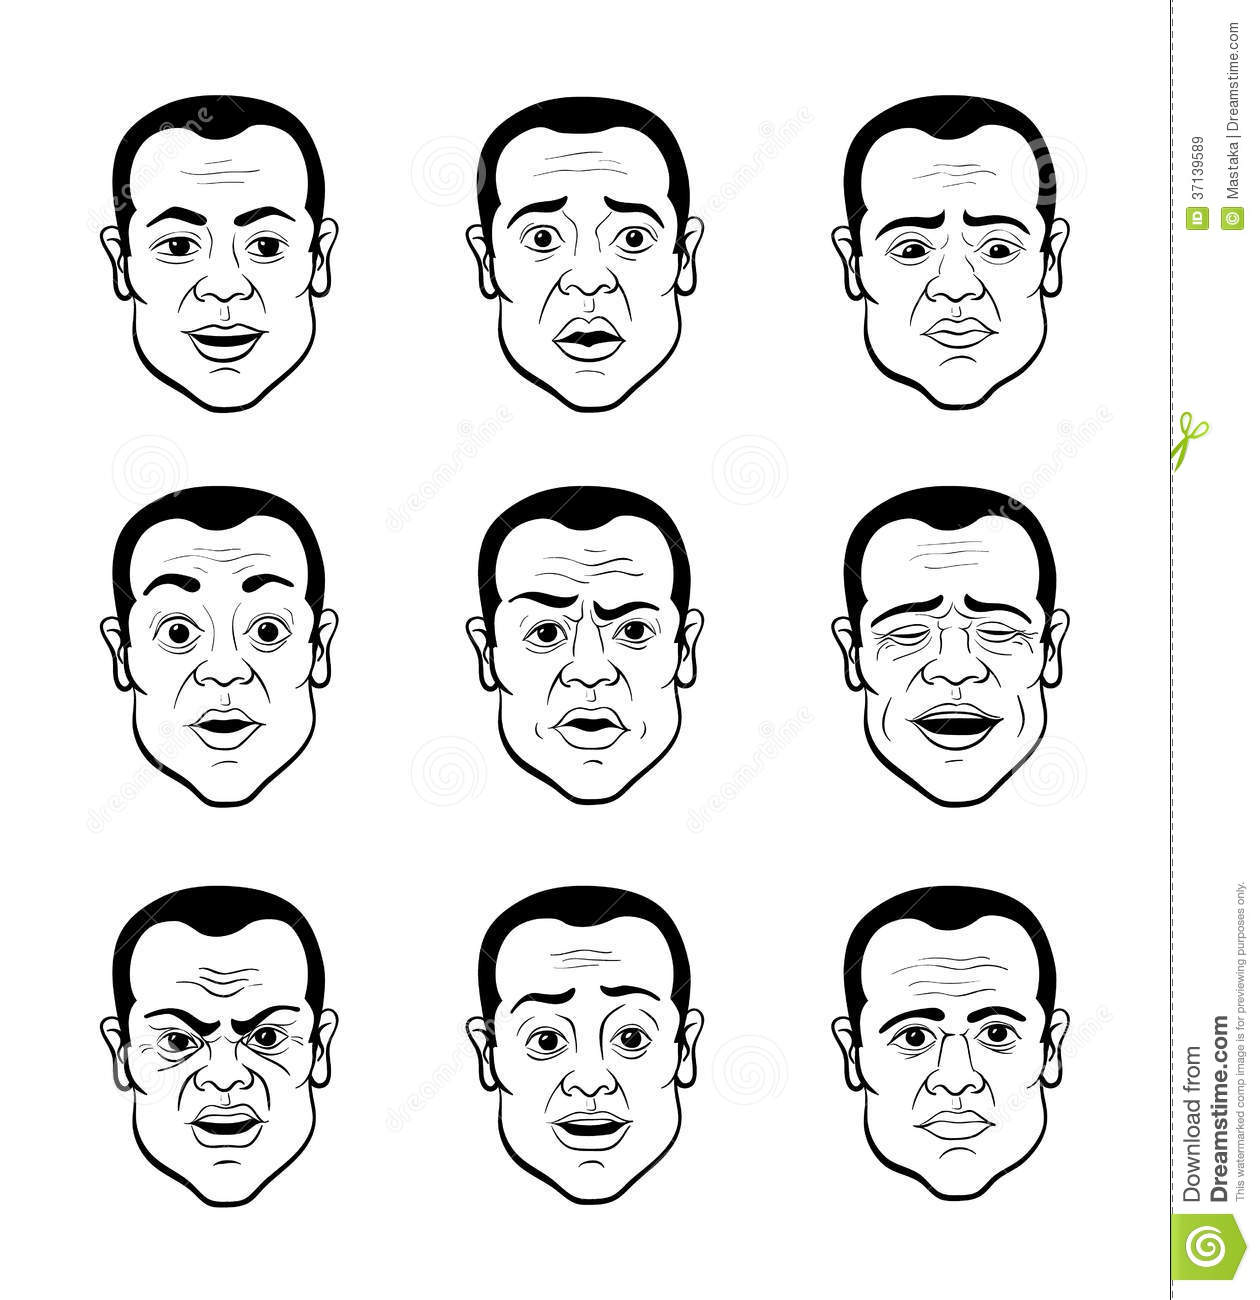 Emotional Lines In Art : Cartooning faces of the man royalty free stock images